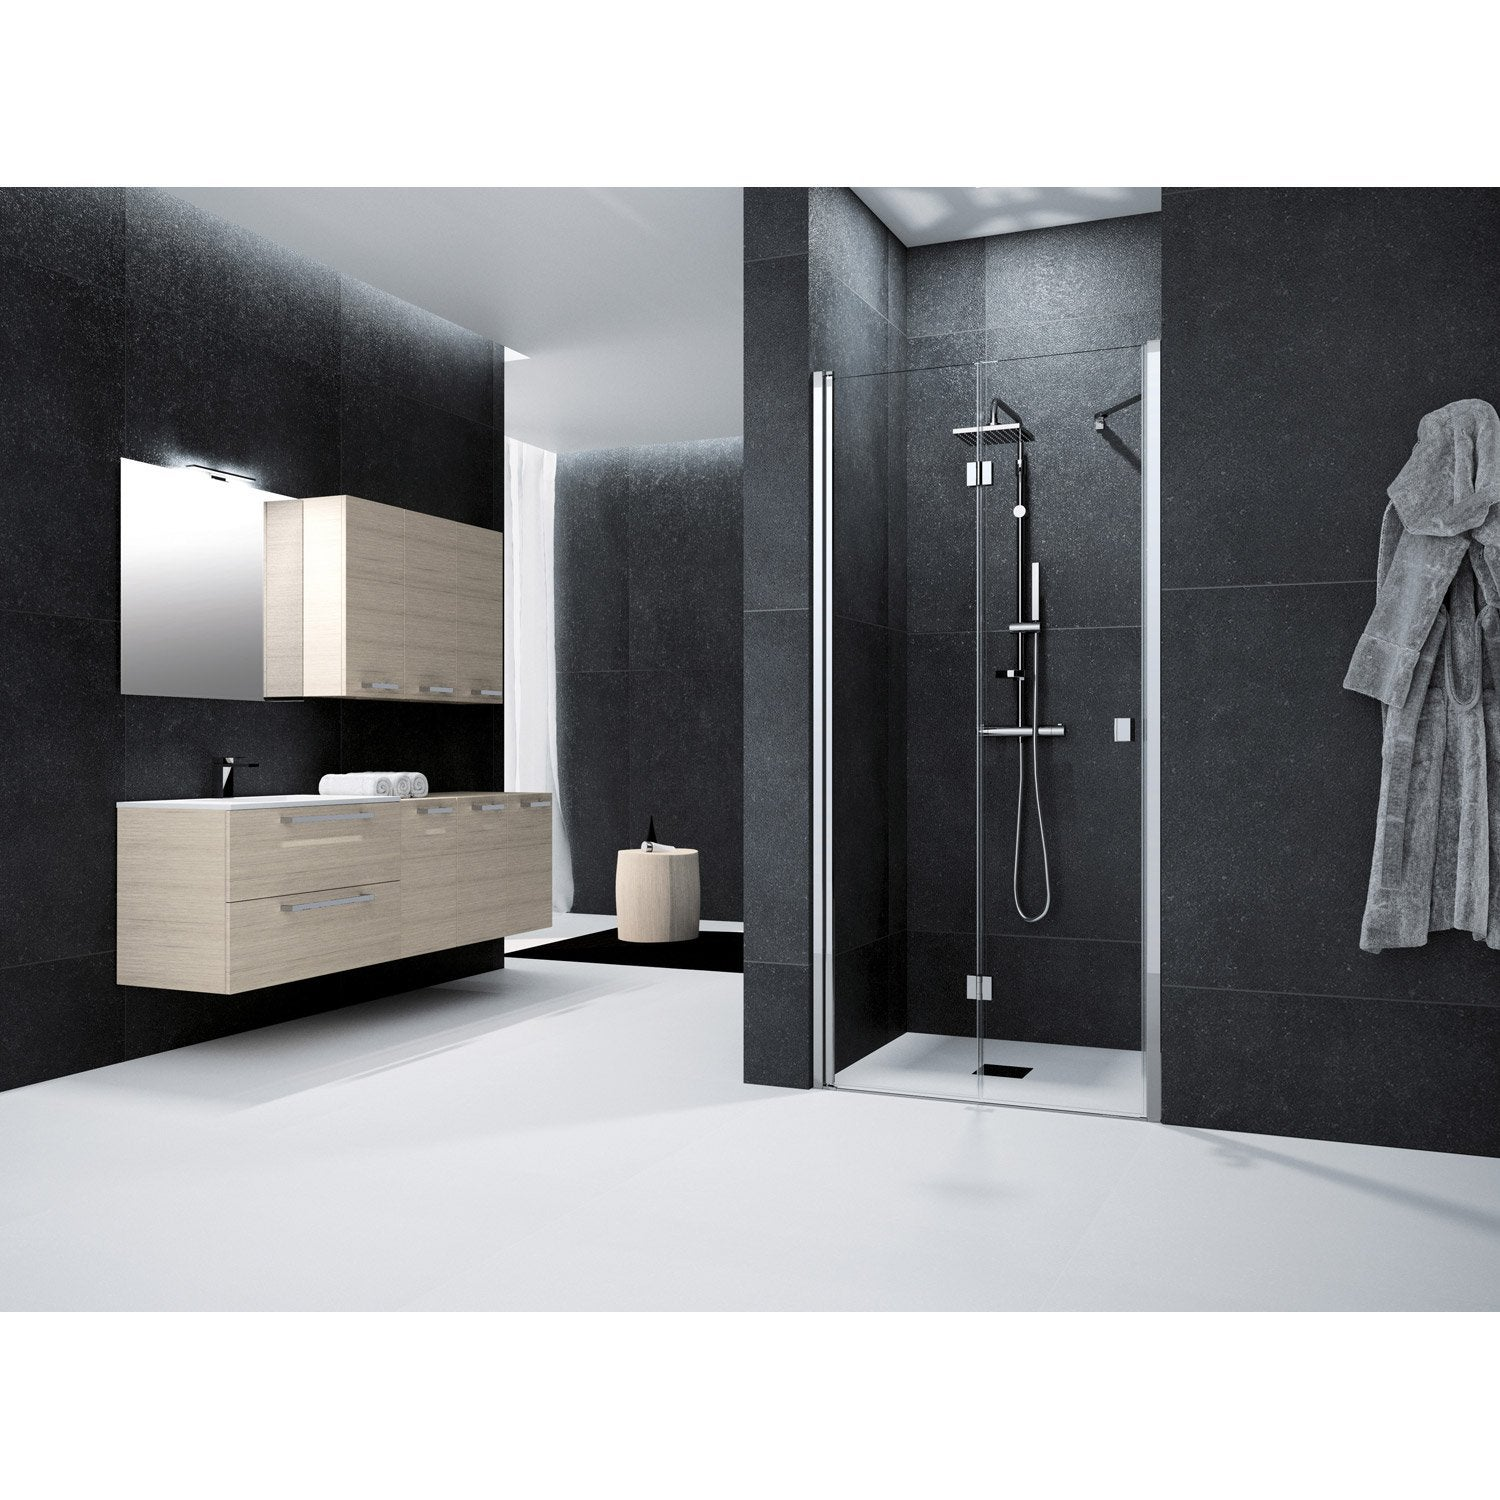 porte de douche pivot pliante 80 cm transparent neo. Black Bedroom Furniture Sets. Home Design Ideas